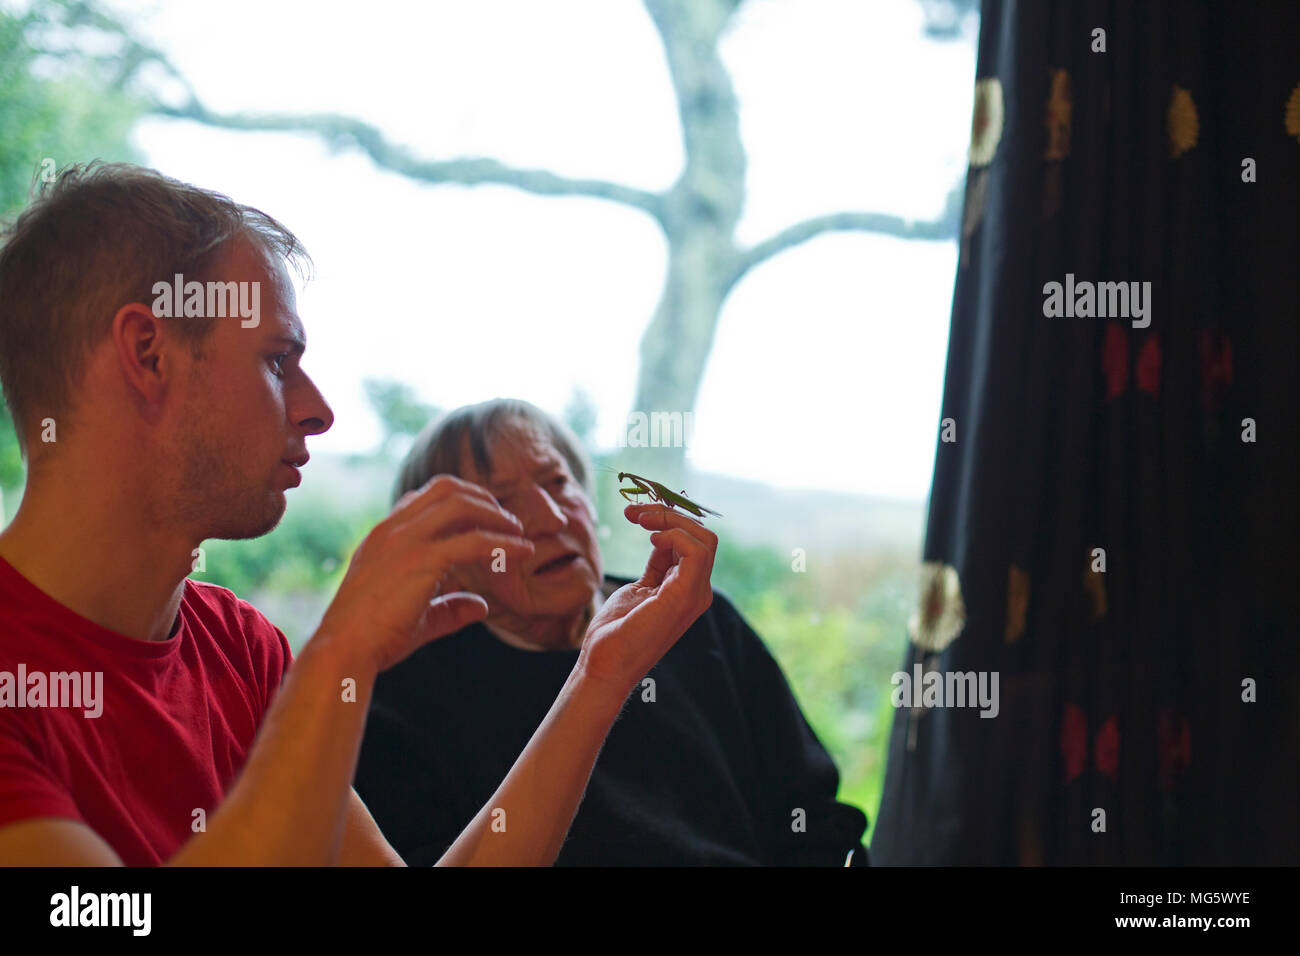 Two people looking closely at a preying mantis - Stock Image